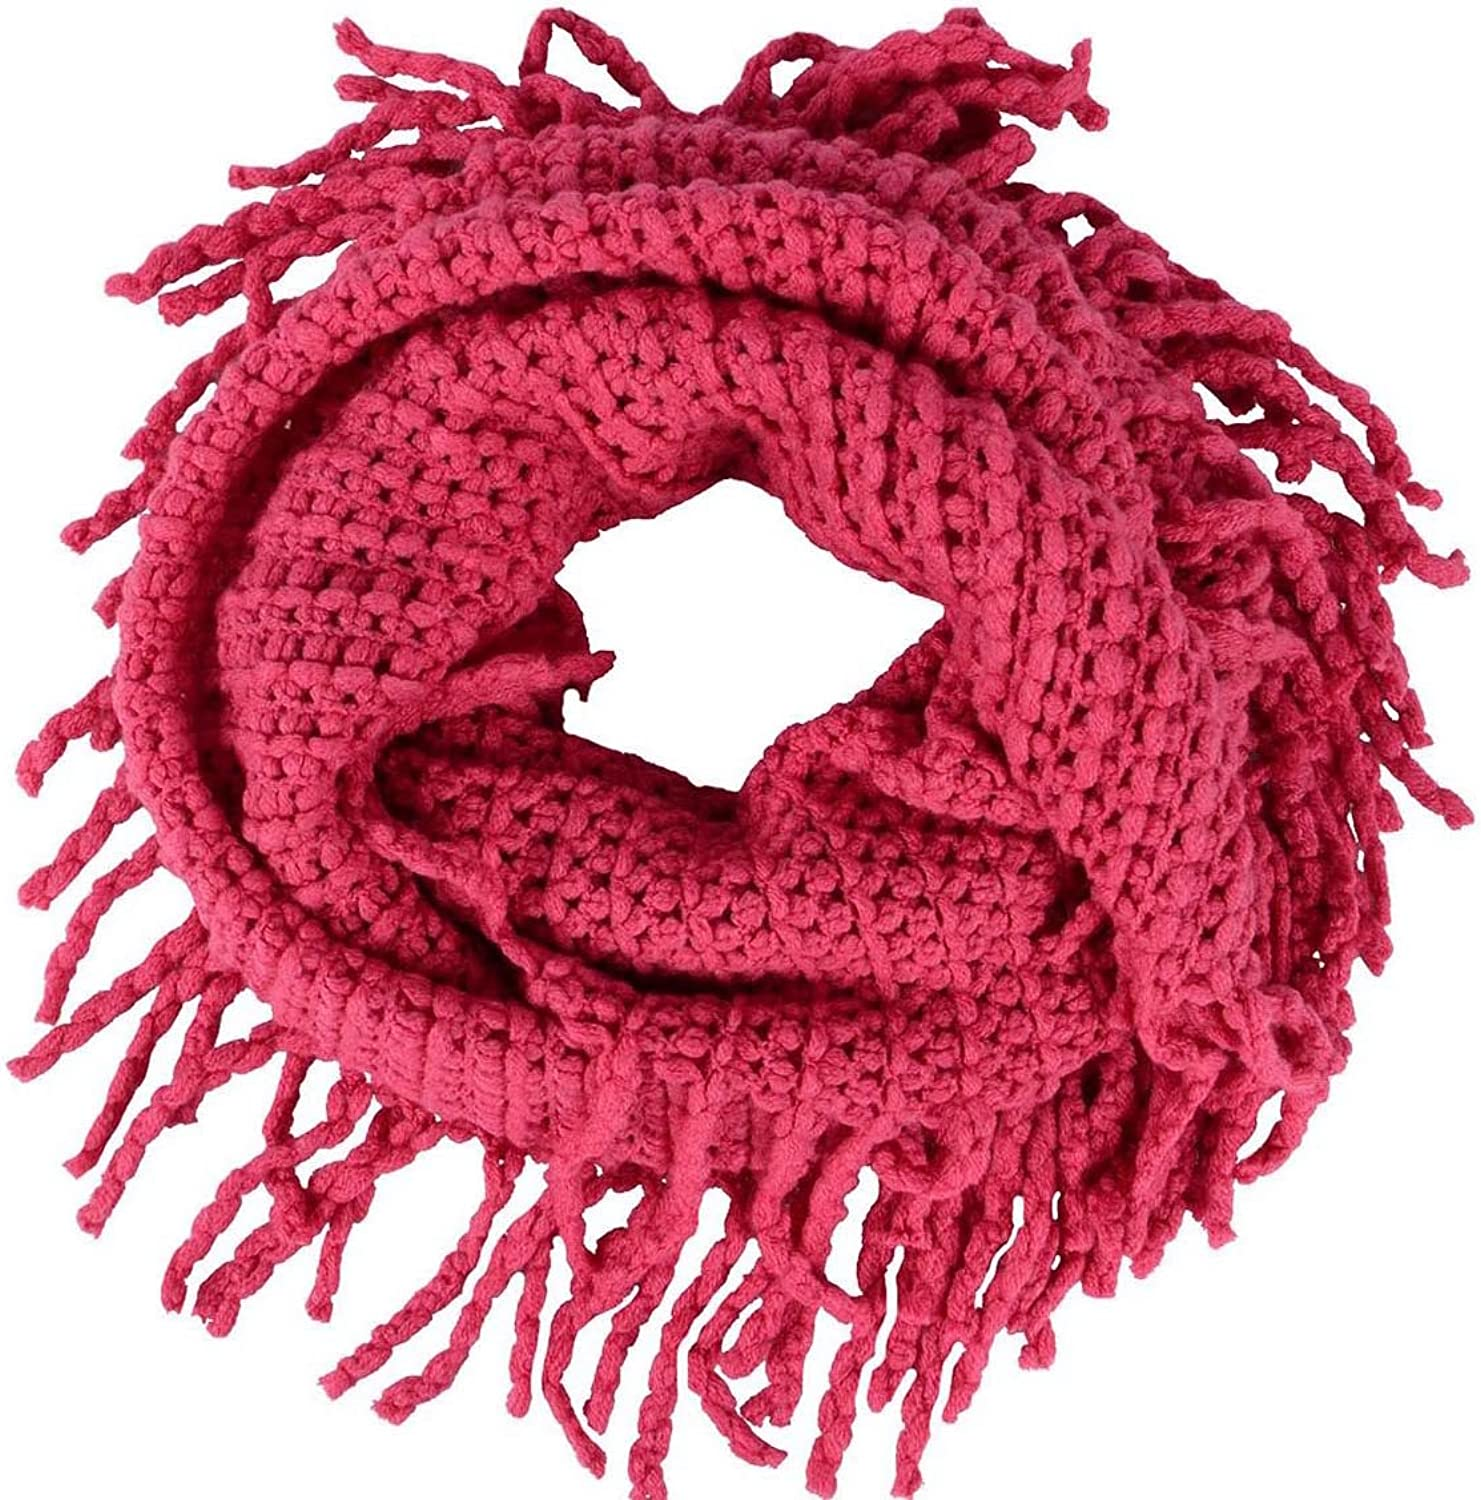 Women's Winter Warm Crochet Knit Fringe Infinity Loop Scarf